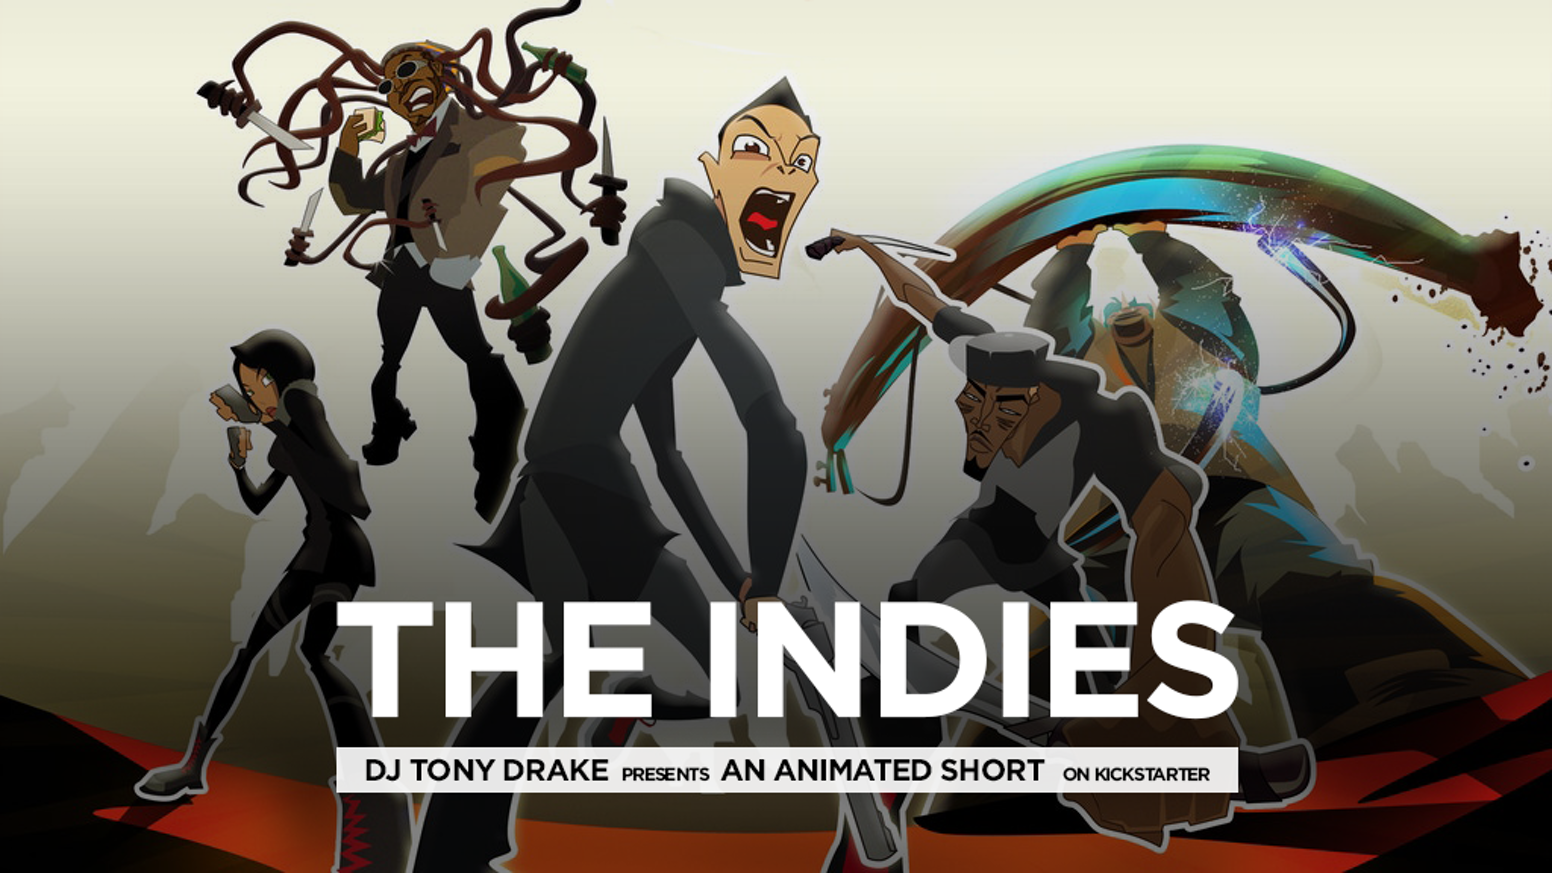 The Indies: An Animated Short is now available for the world to see. Click the button below to watch. Also, the lead single from the short film (DJ Tony Drake - Trouble) is now available for purchase on iTunes as well as on all streaming services.